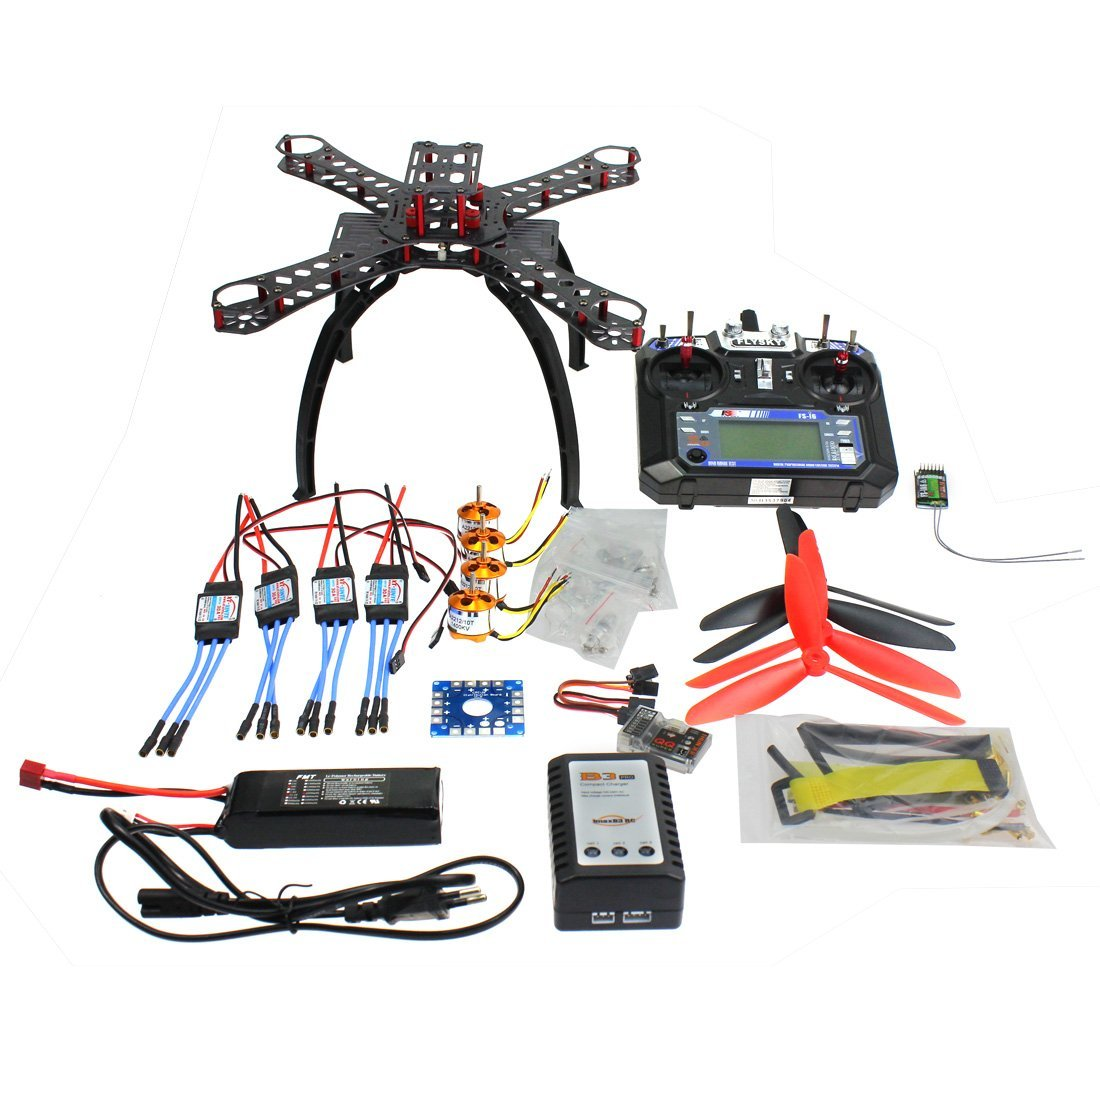 The best build your own drone kits for kids, teens and adults